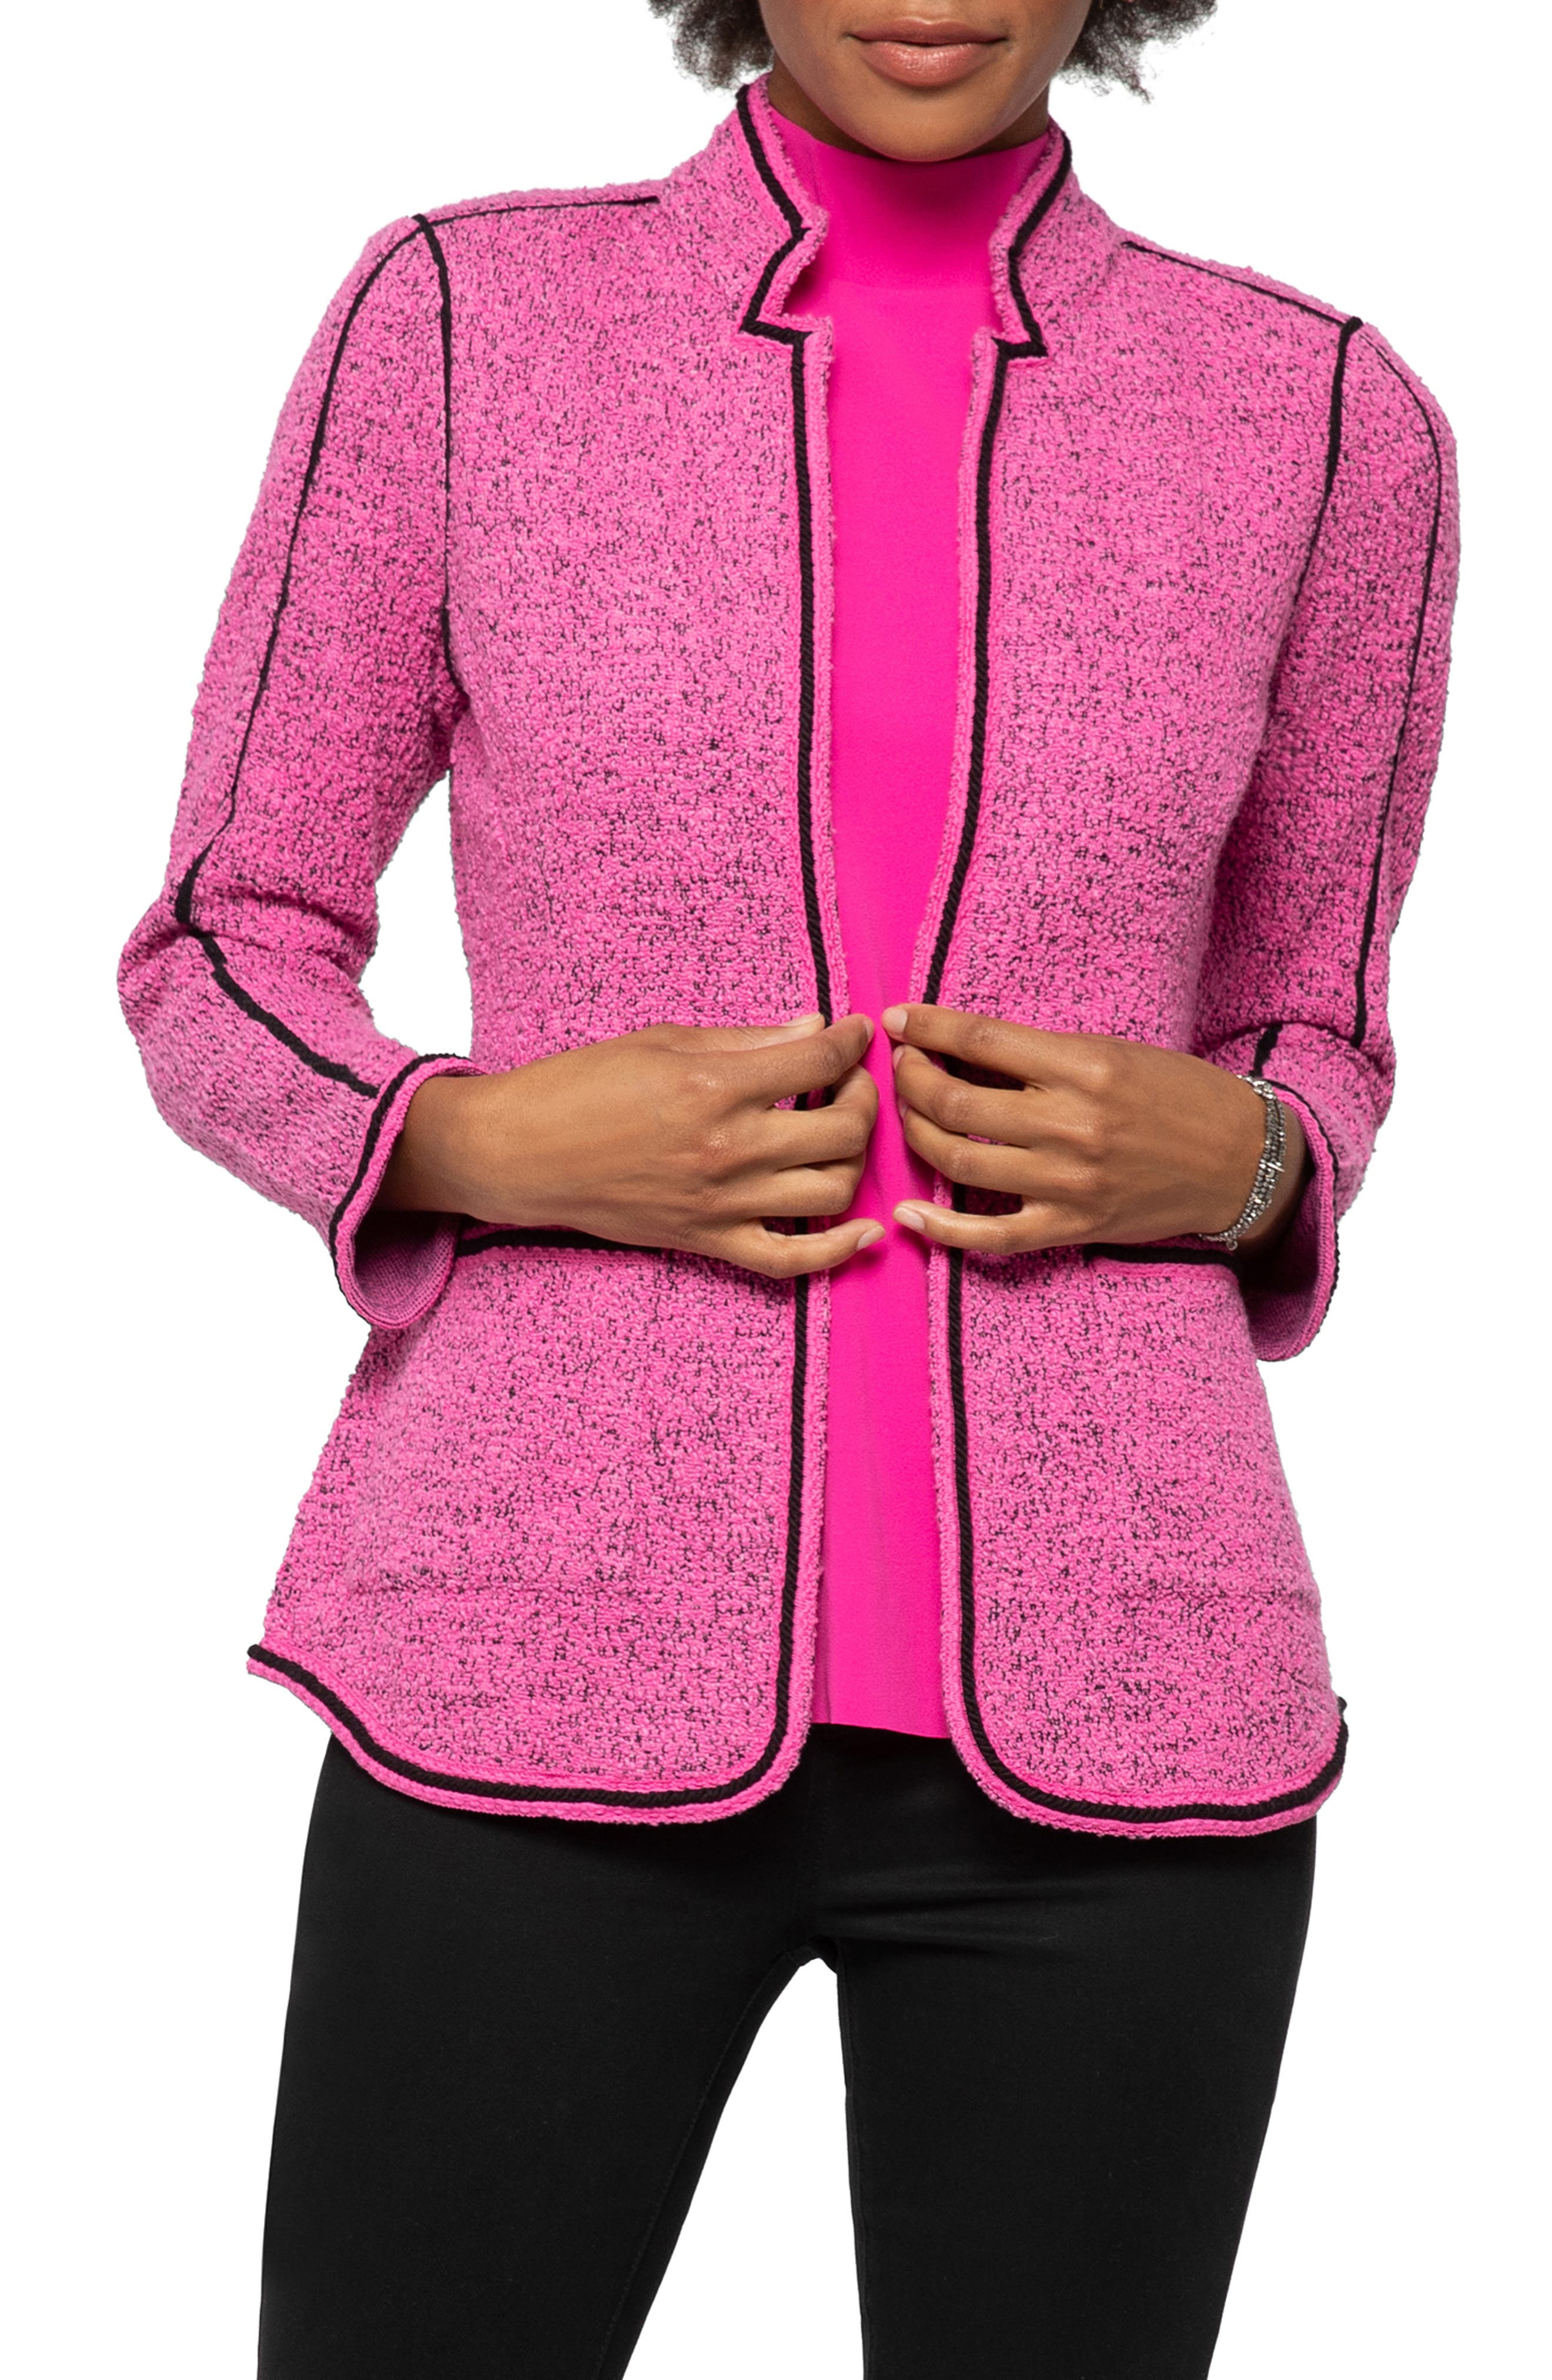 An unexpected hue makes a power move in this tweedy knit jacket further refreshed in a shapely silhouette outlined in bold, contrasting trim. Style Name: Nic+Zoe Power Play Jacket (Regular & Petite). Style Number: 5927361. Available in stores.